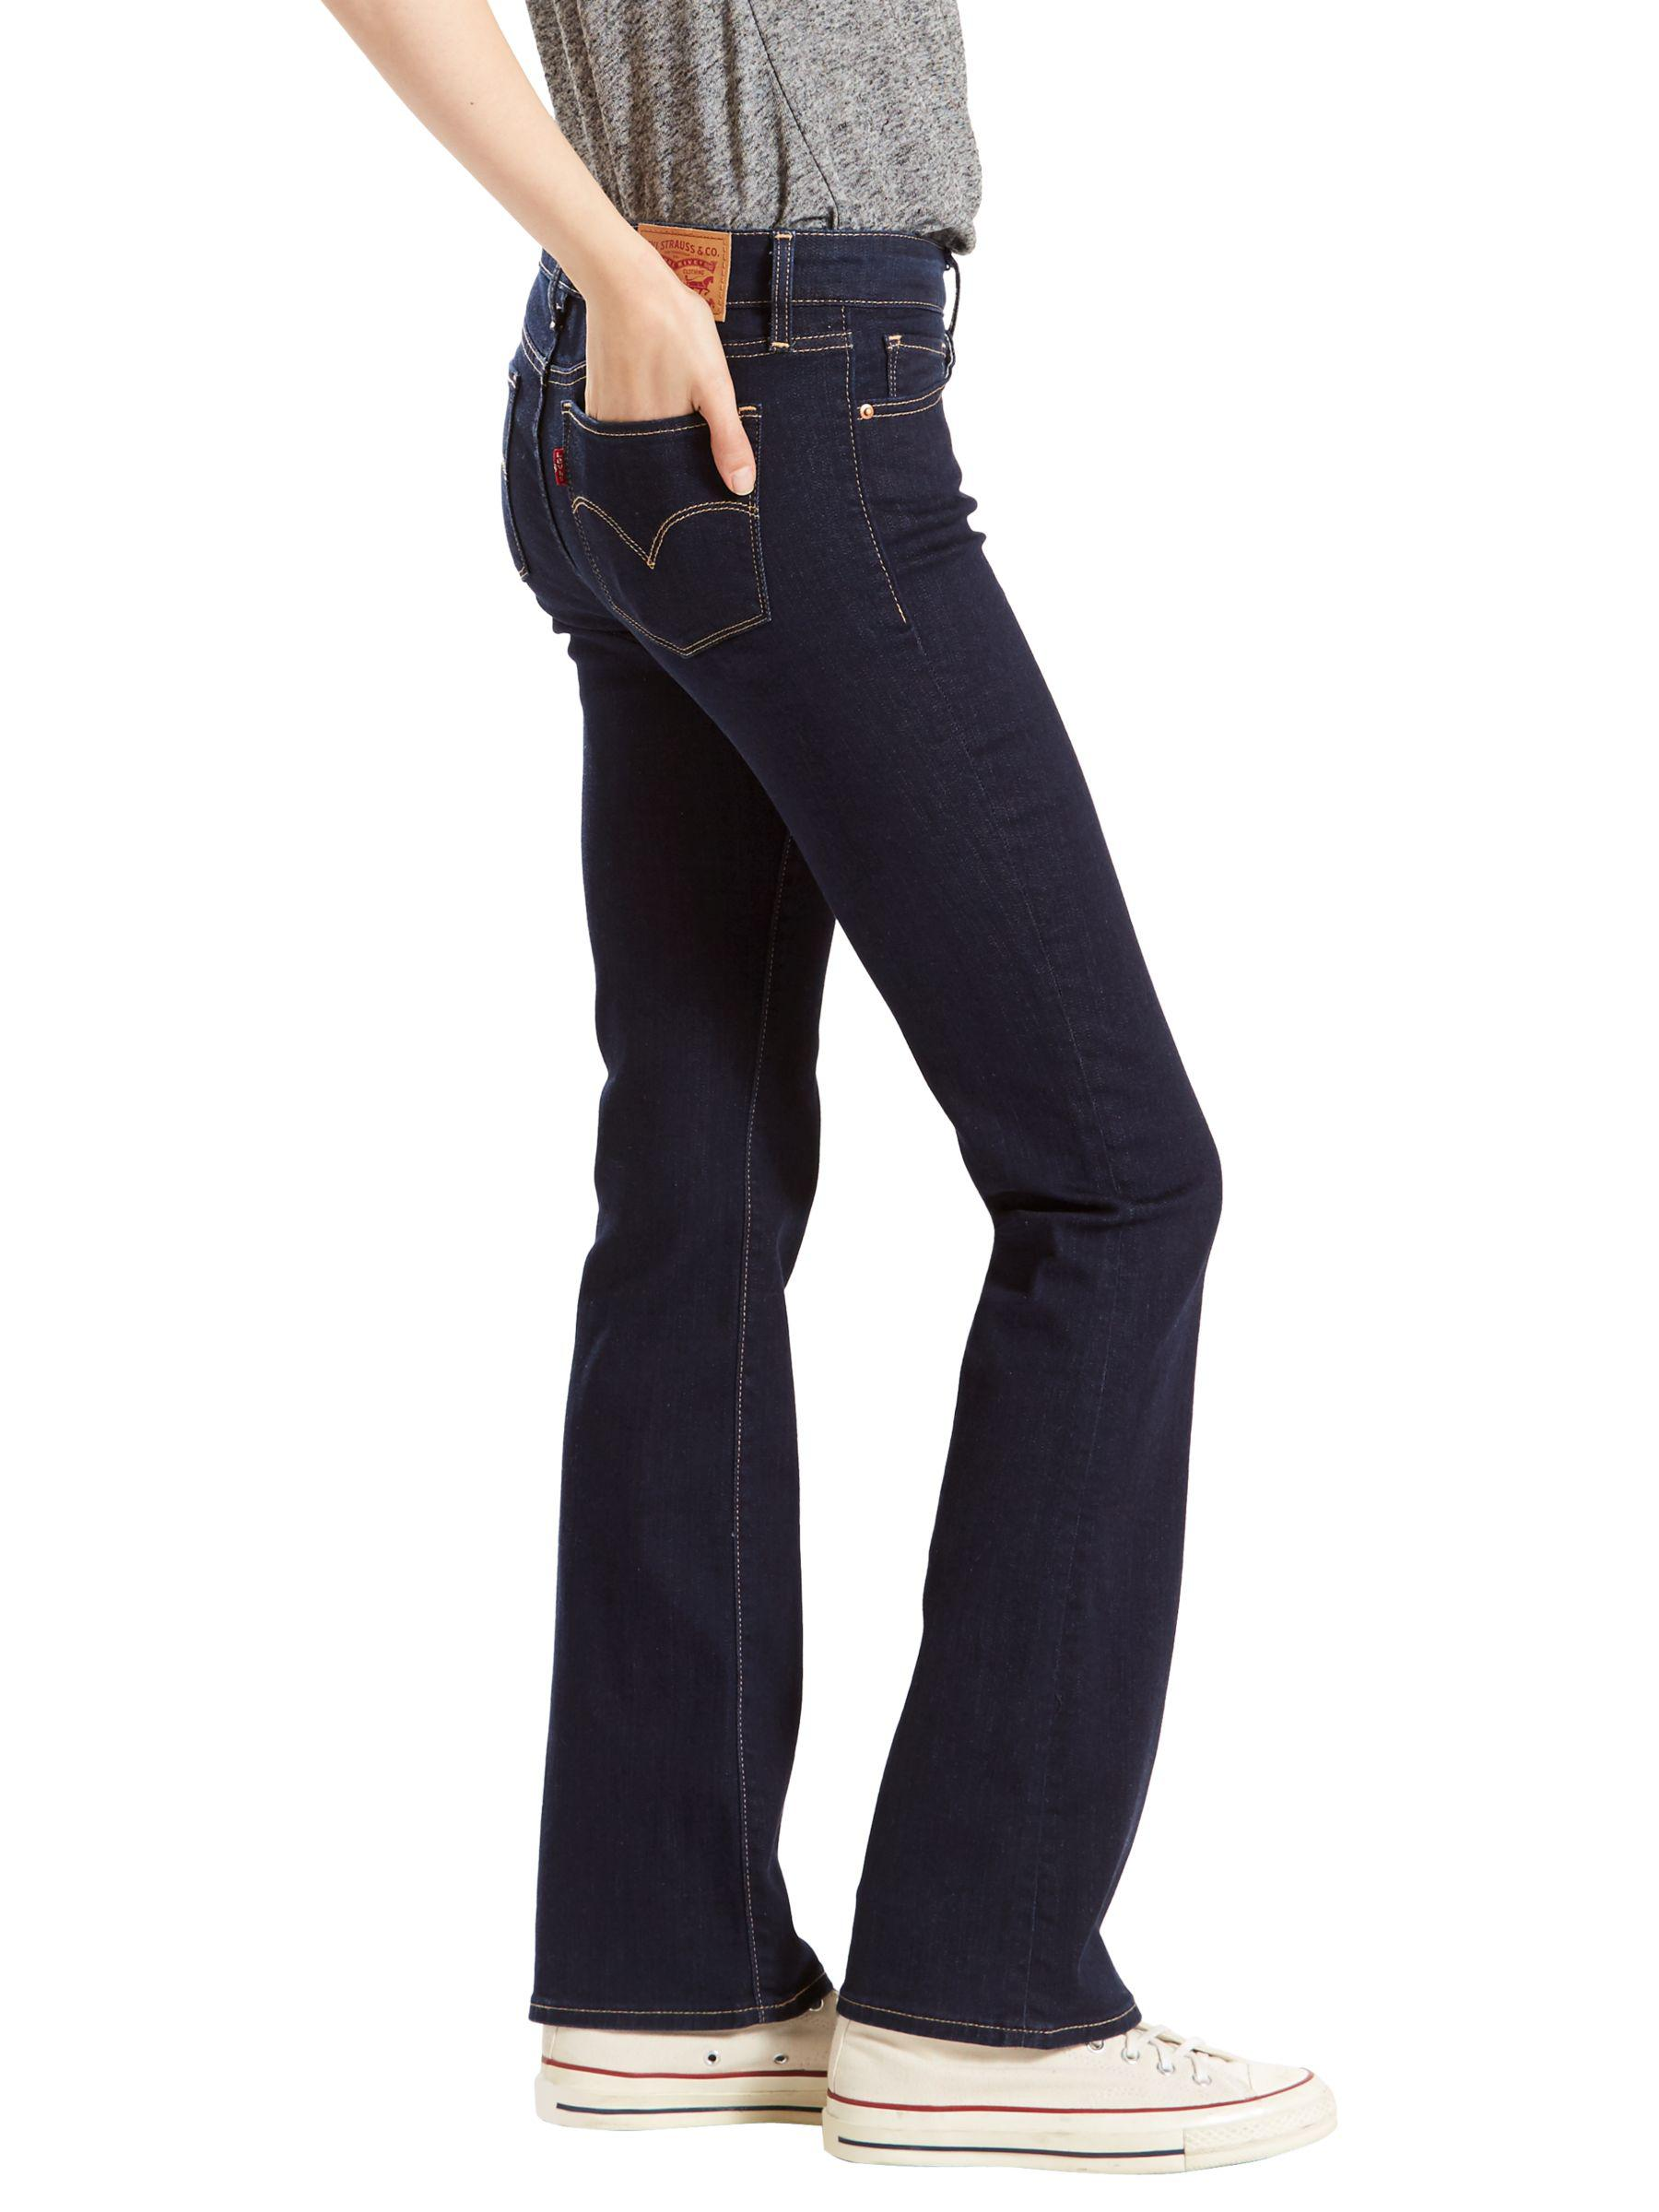 Levi's Denim 715 Mid Rise Bootcut Jeans in Blue